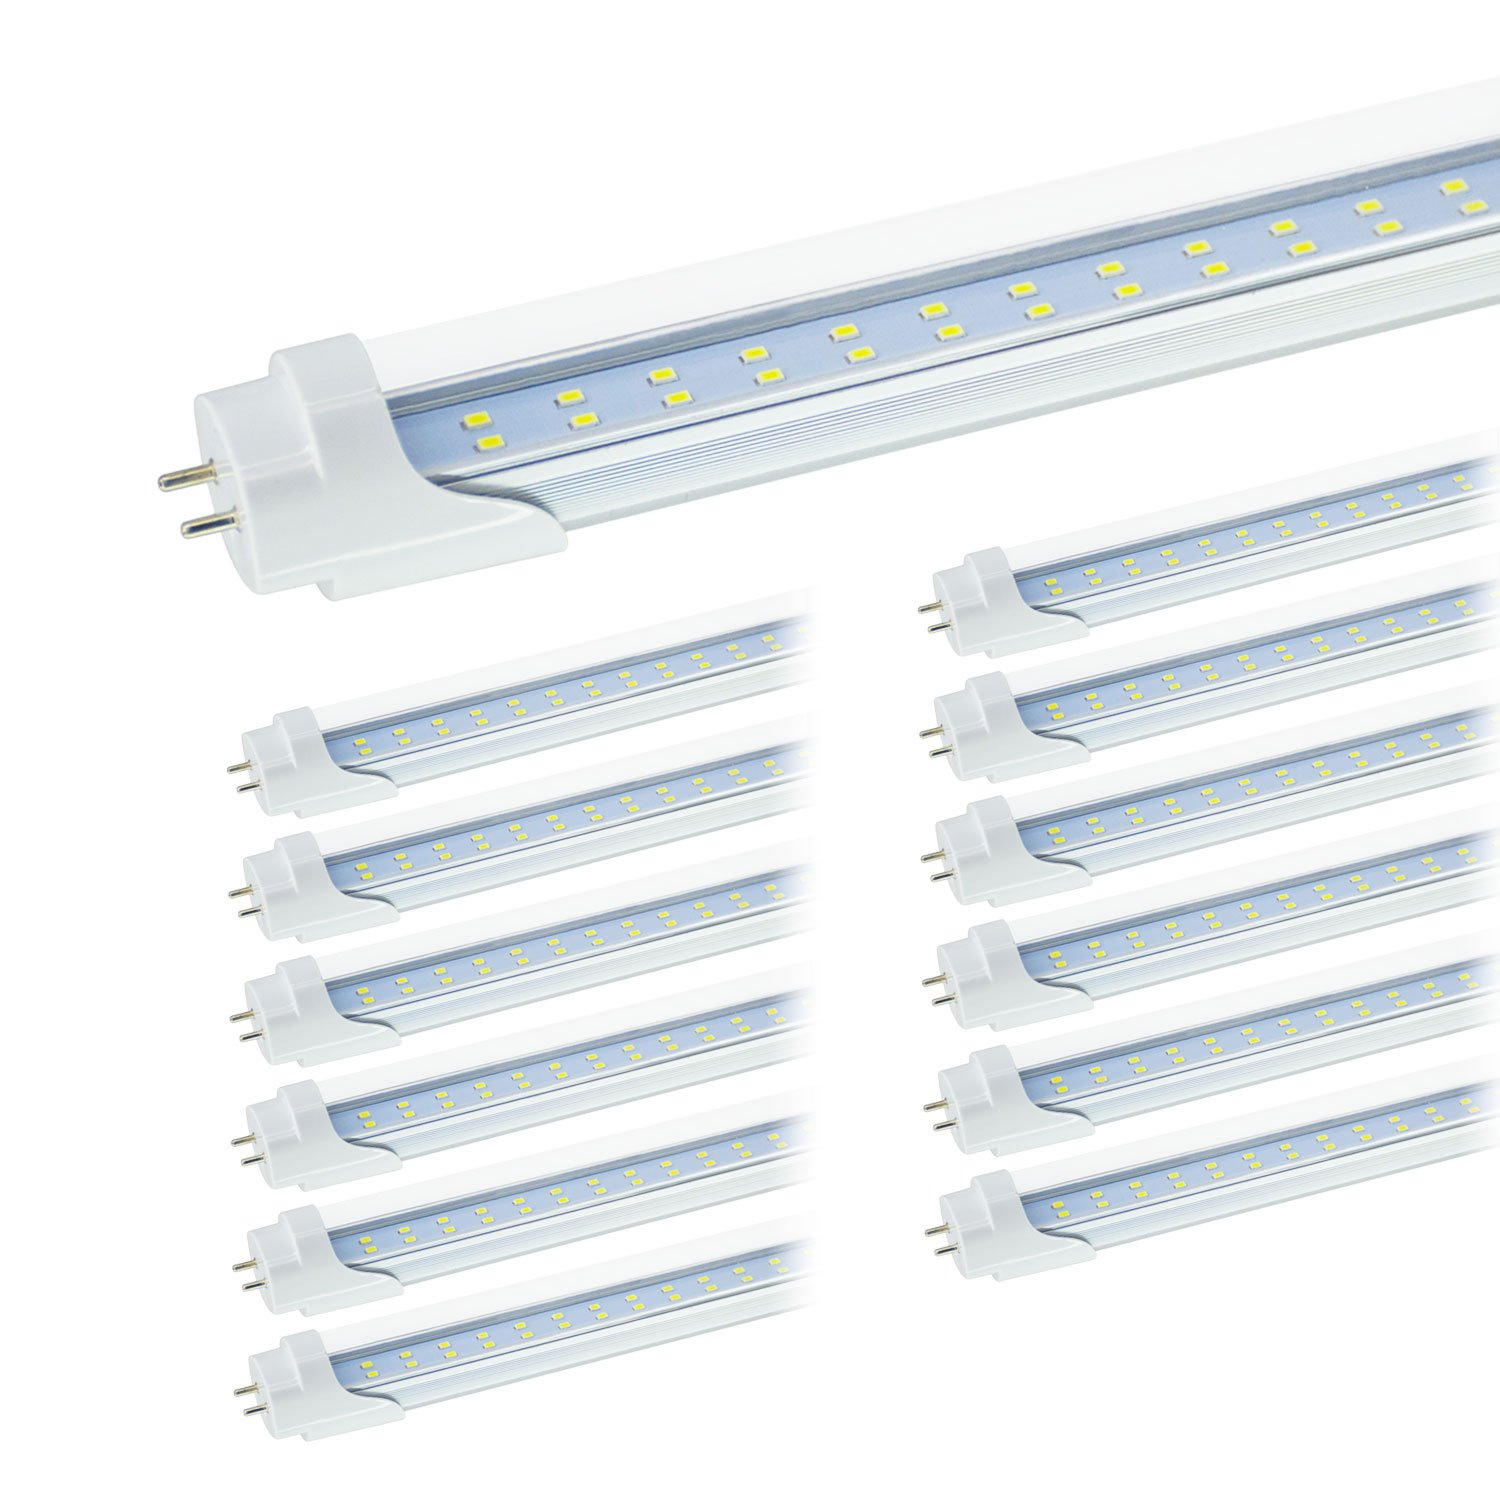 JESLED T8 4FT LED Tube Light, 5000k Daylight, 24W 3000LM, Clear Cover, 4 Foot 48'' T12 LED Bulbs Replacement for Garage Warehouse Shops Fluorescent Fixture, Dual-end Powered, Ballast Bypass (12-Pack)